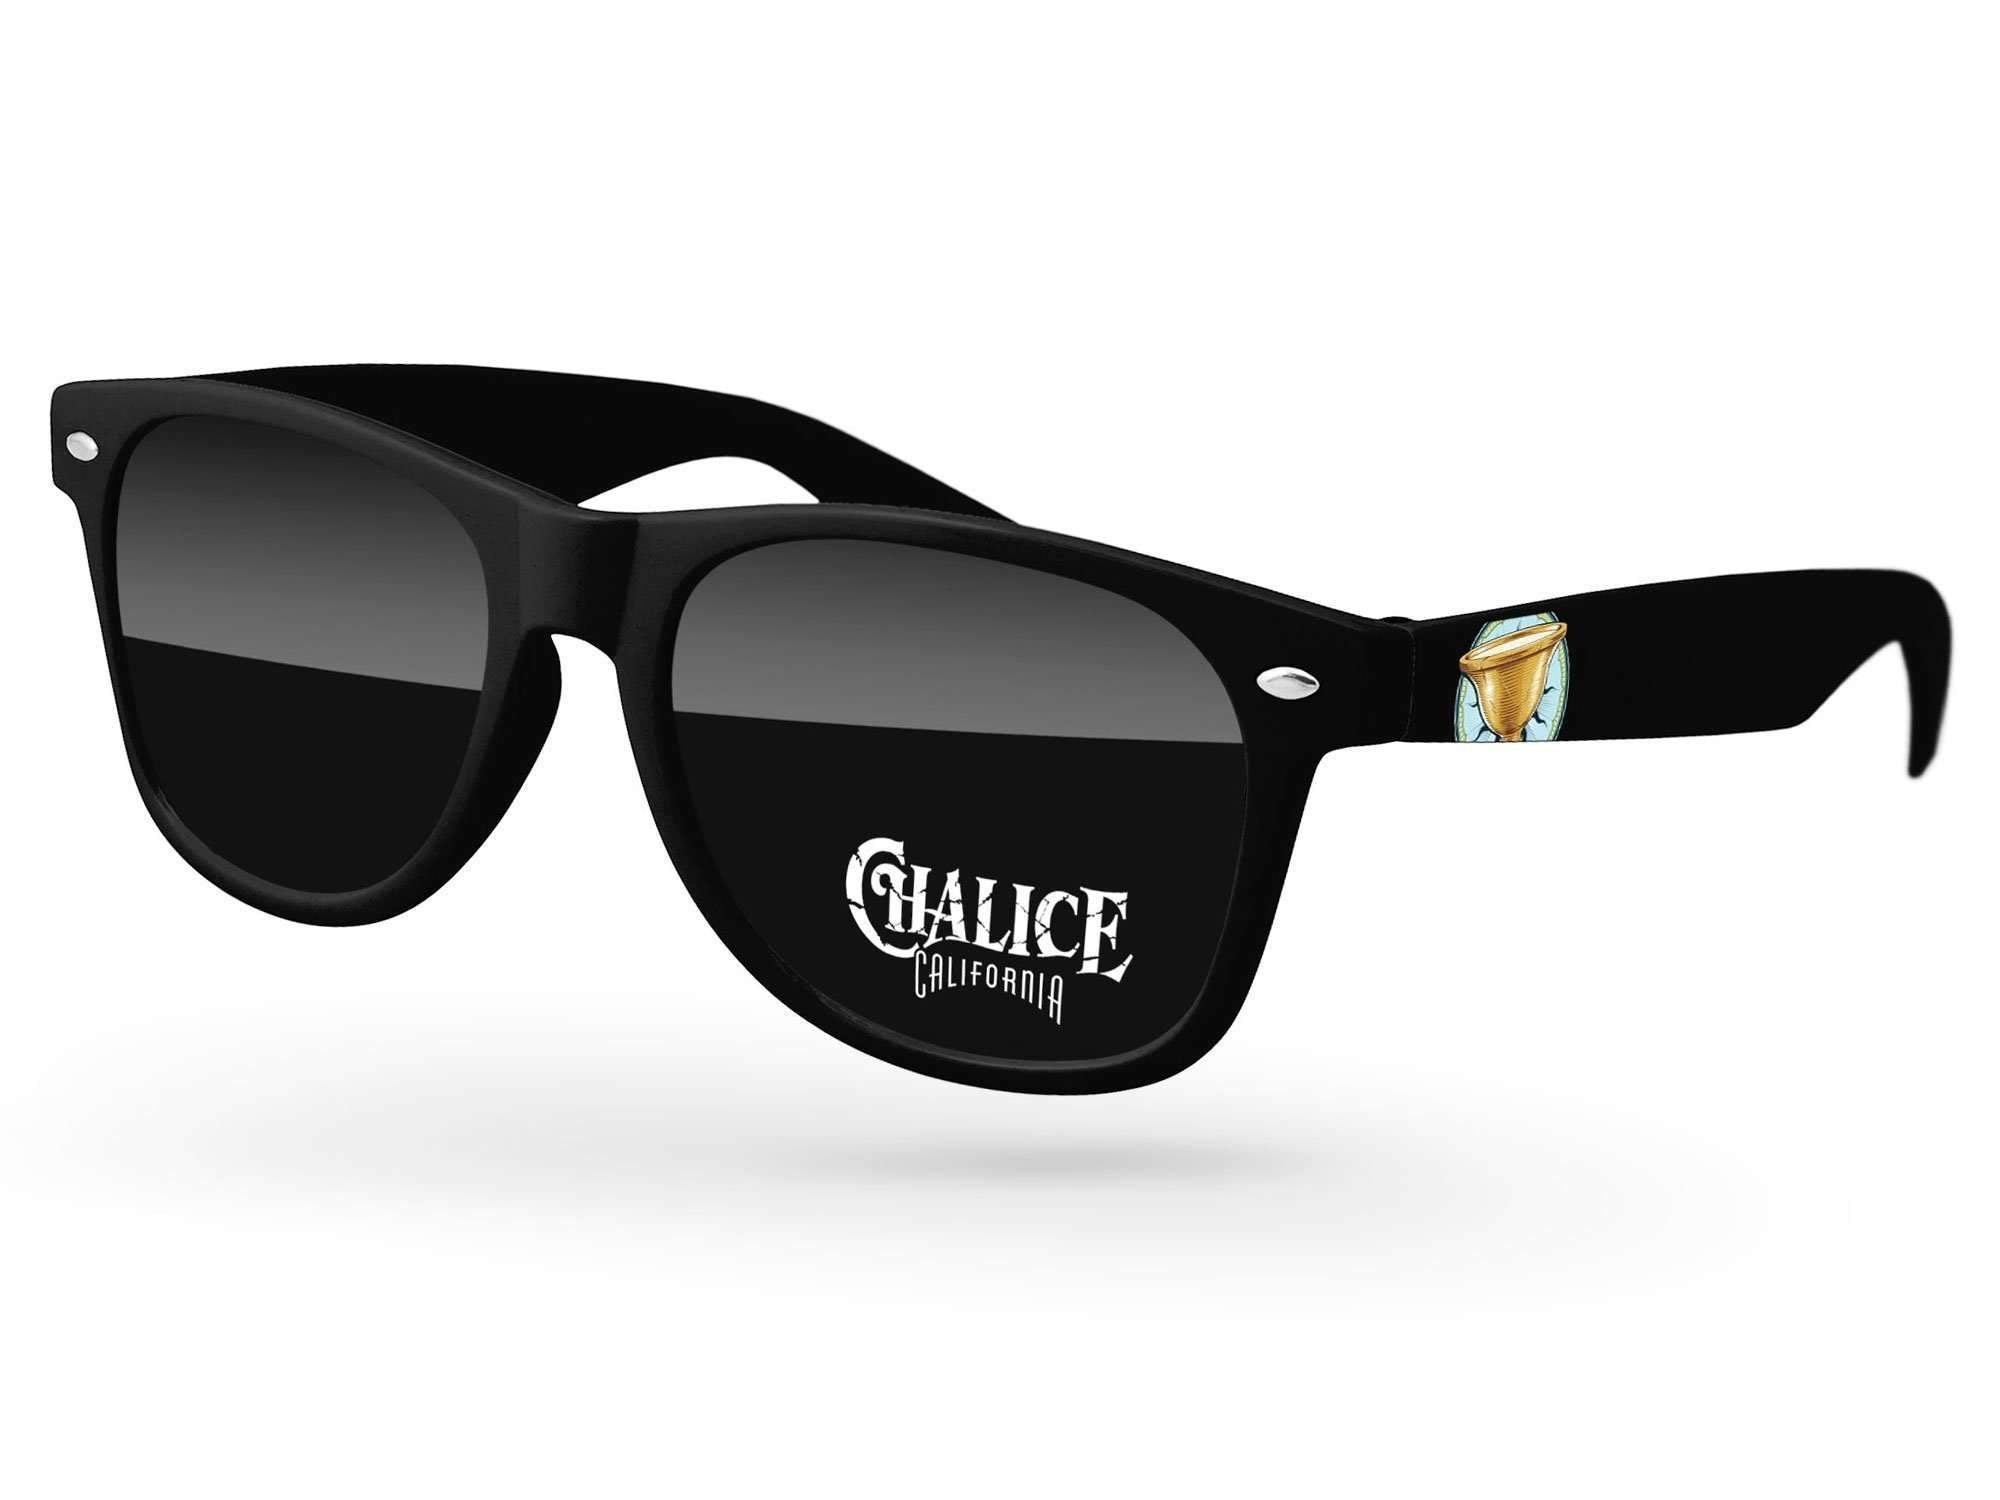 RD520 - Retro Promotional Sunglasses w/ 1-color lens imprint & full-color temple imprint